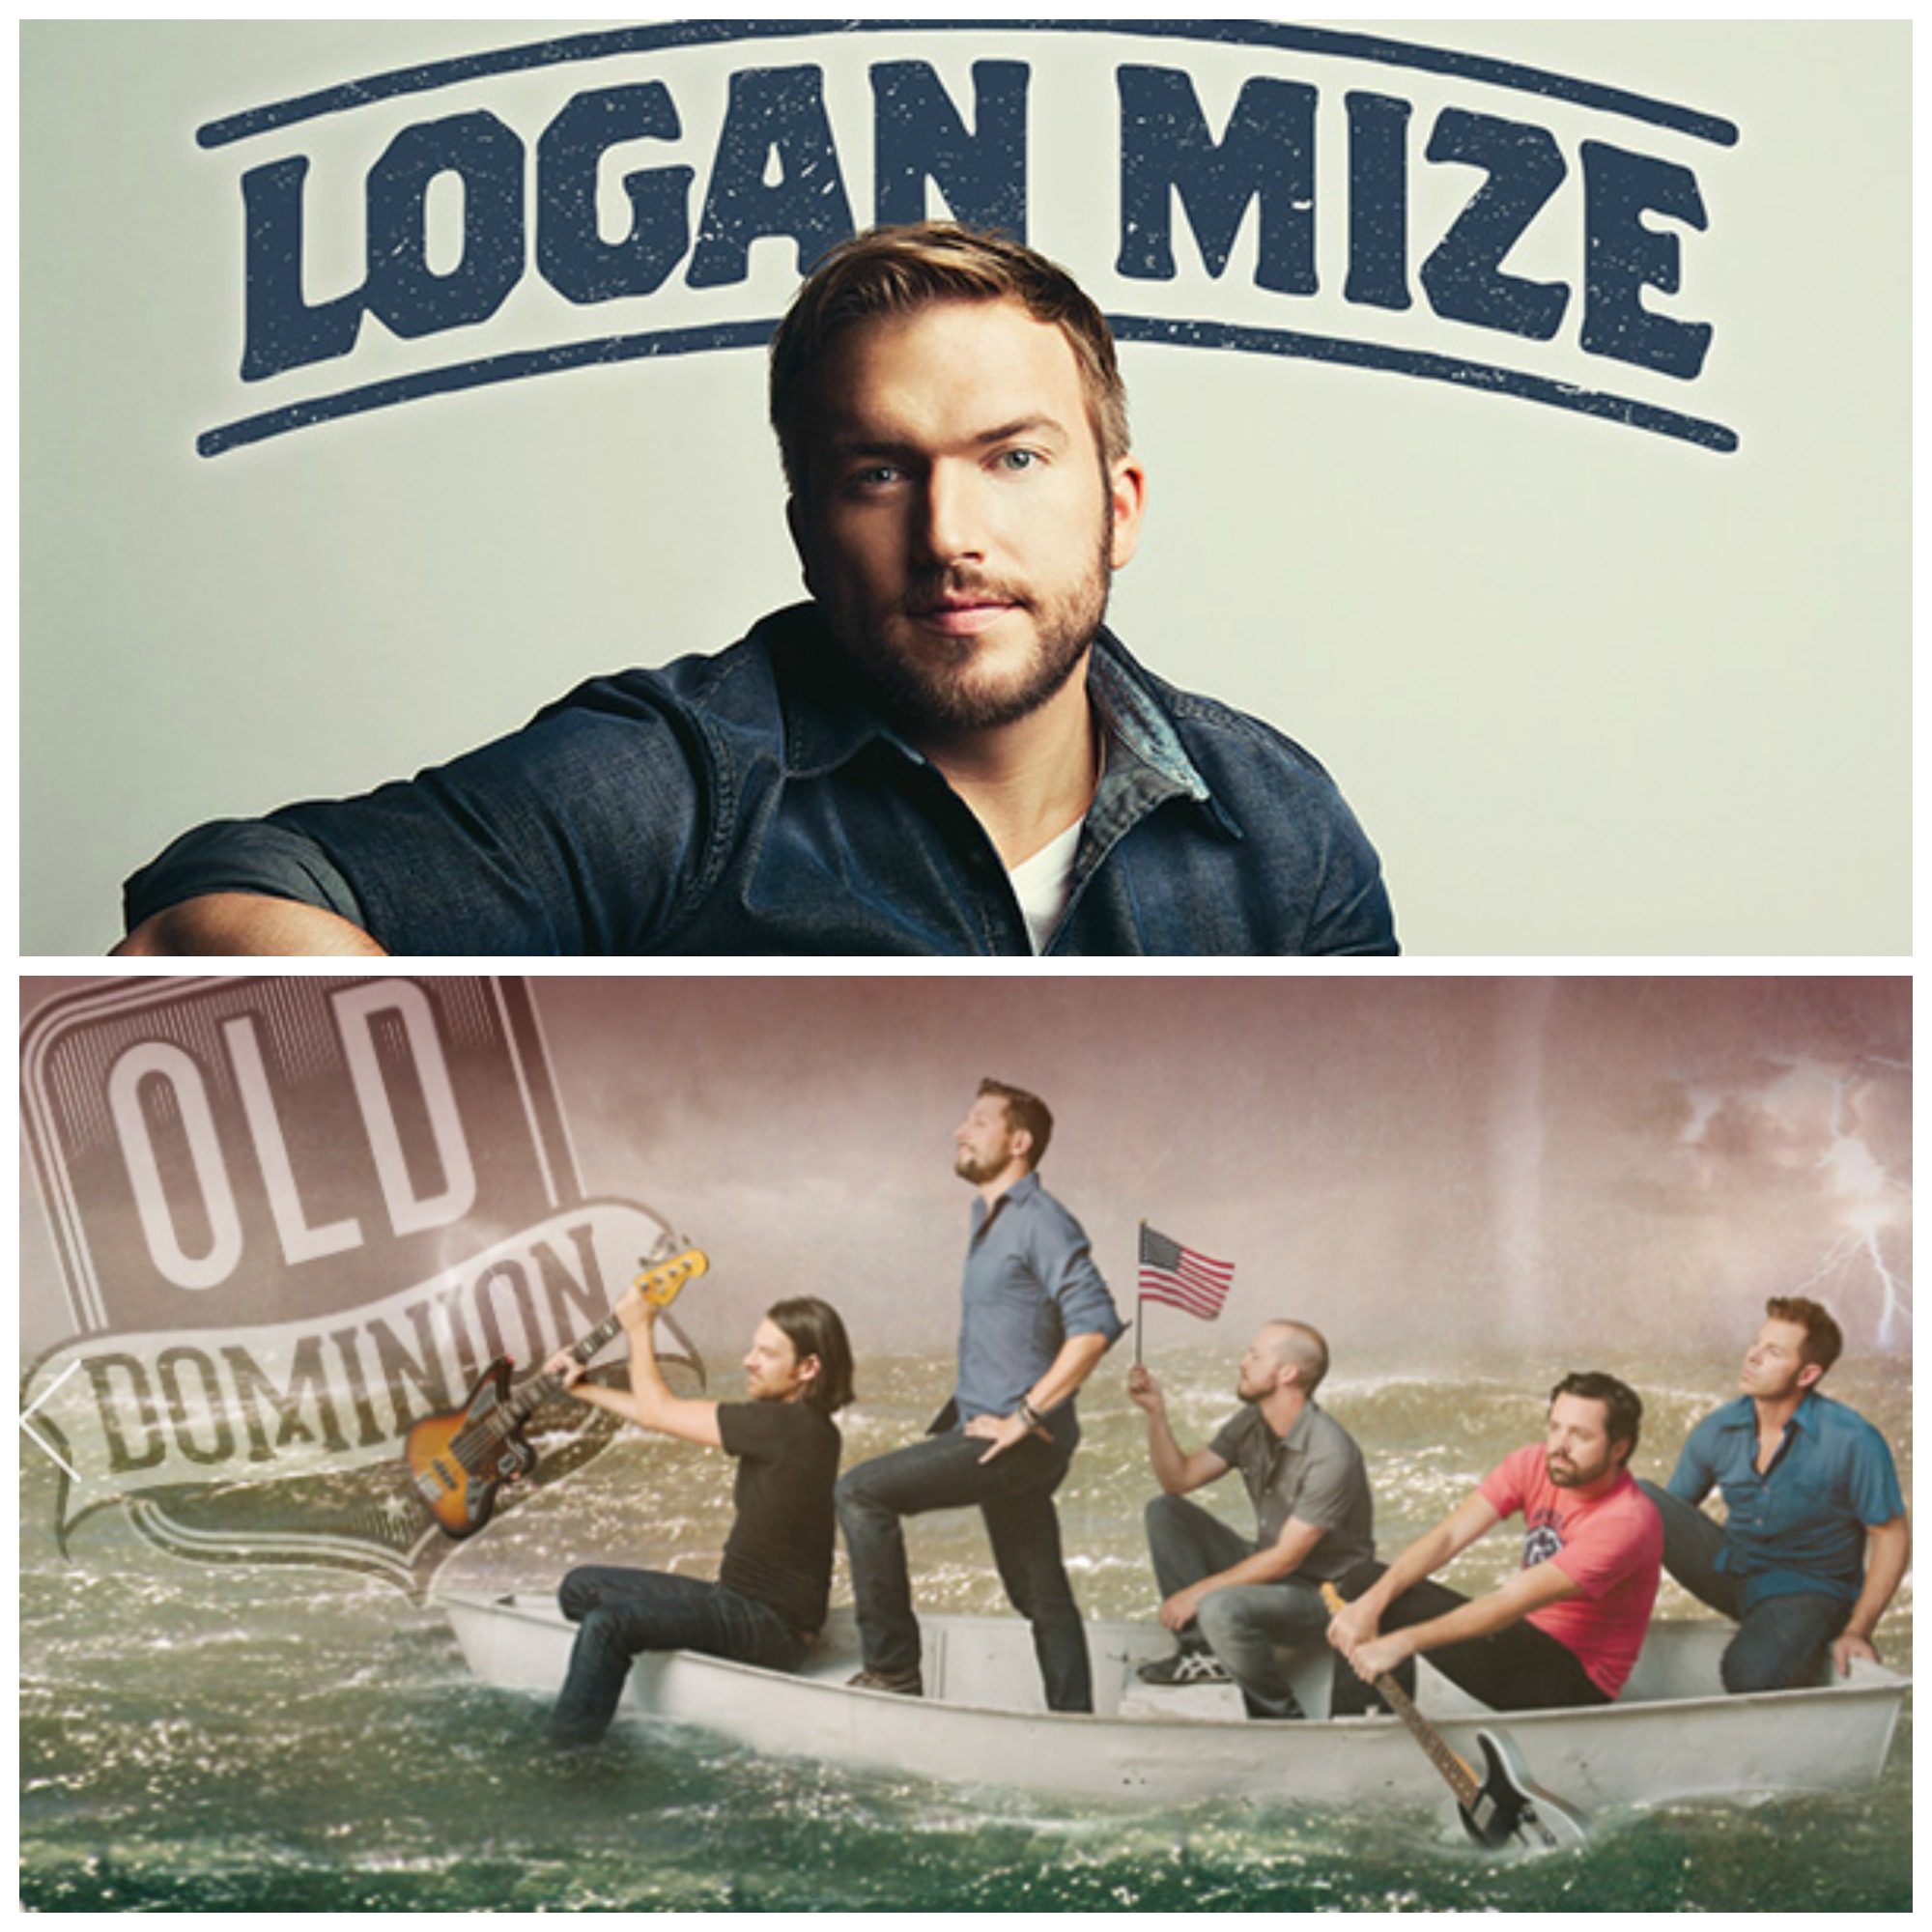 Logan Mize and Old Dominion